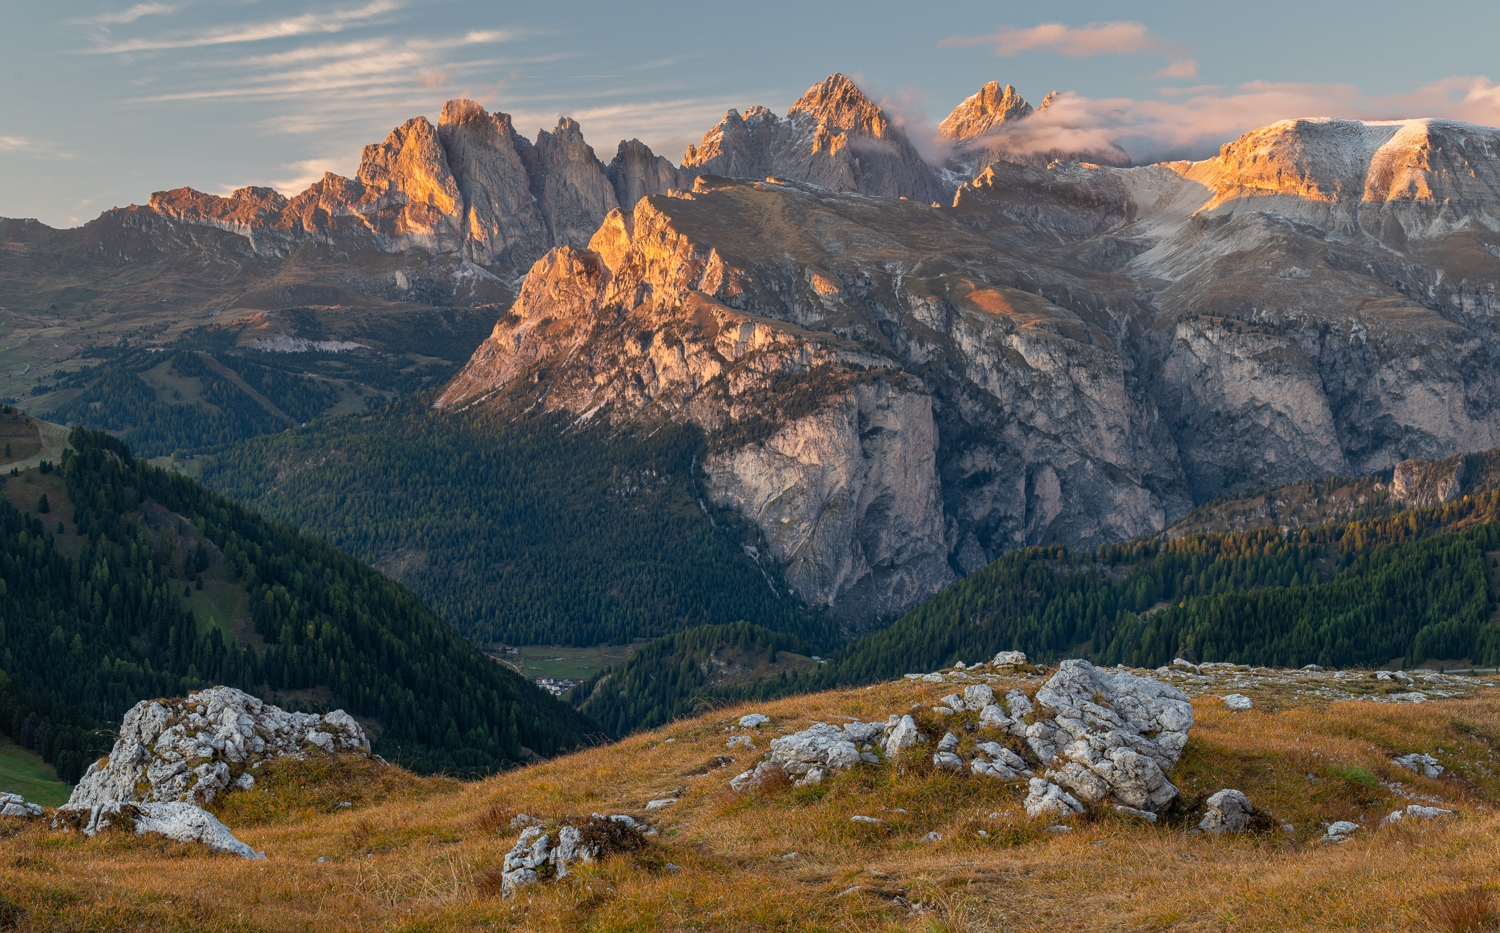 Odie Range seen from Passo Sella, Dolomites, Italy.